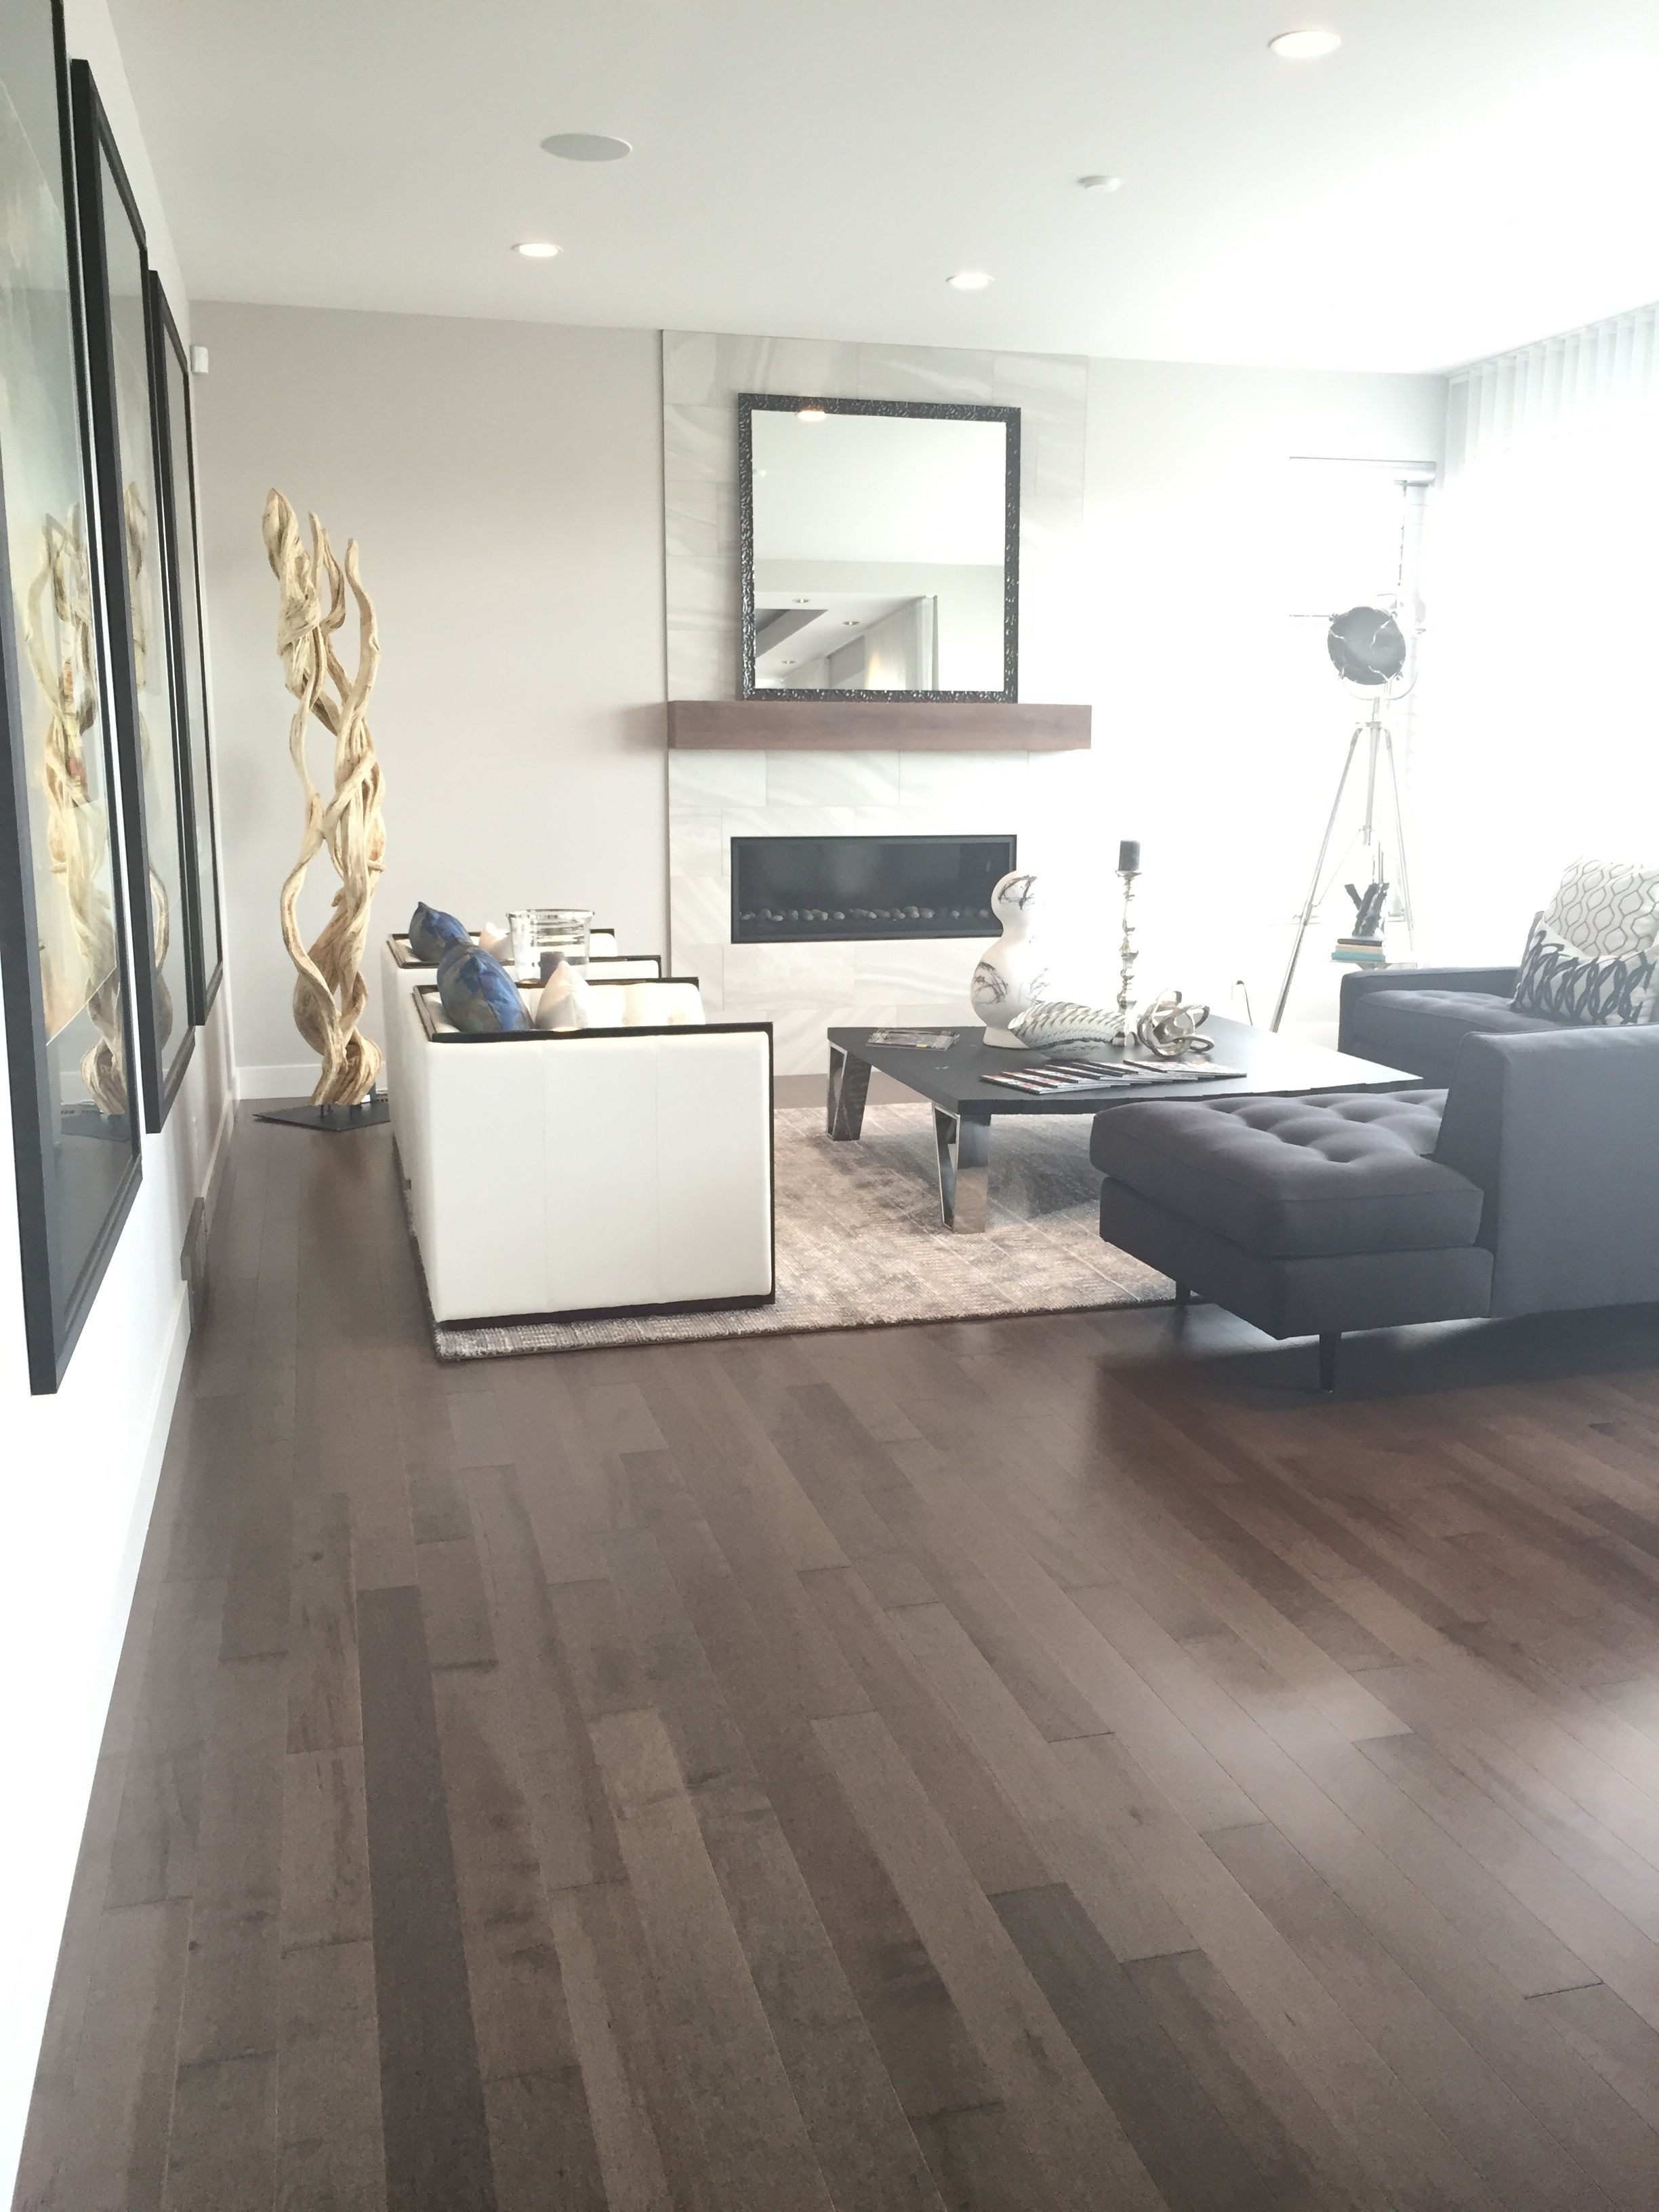 11 Popular Mohawk Hardwood Floors Llc 2021 free download mohawk hardwood floors llc of smoky grey essential hard maple tradition lauzon hardwood with beautiful living room from the cantata showhome featuring lauzons smokey grey hard maple hardwood